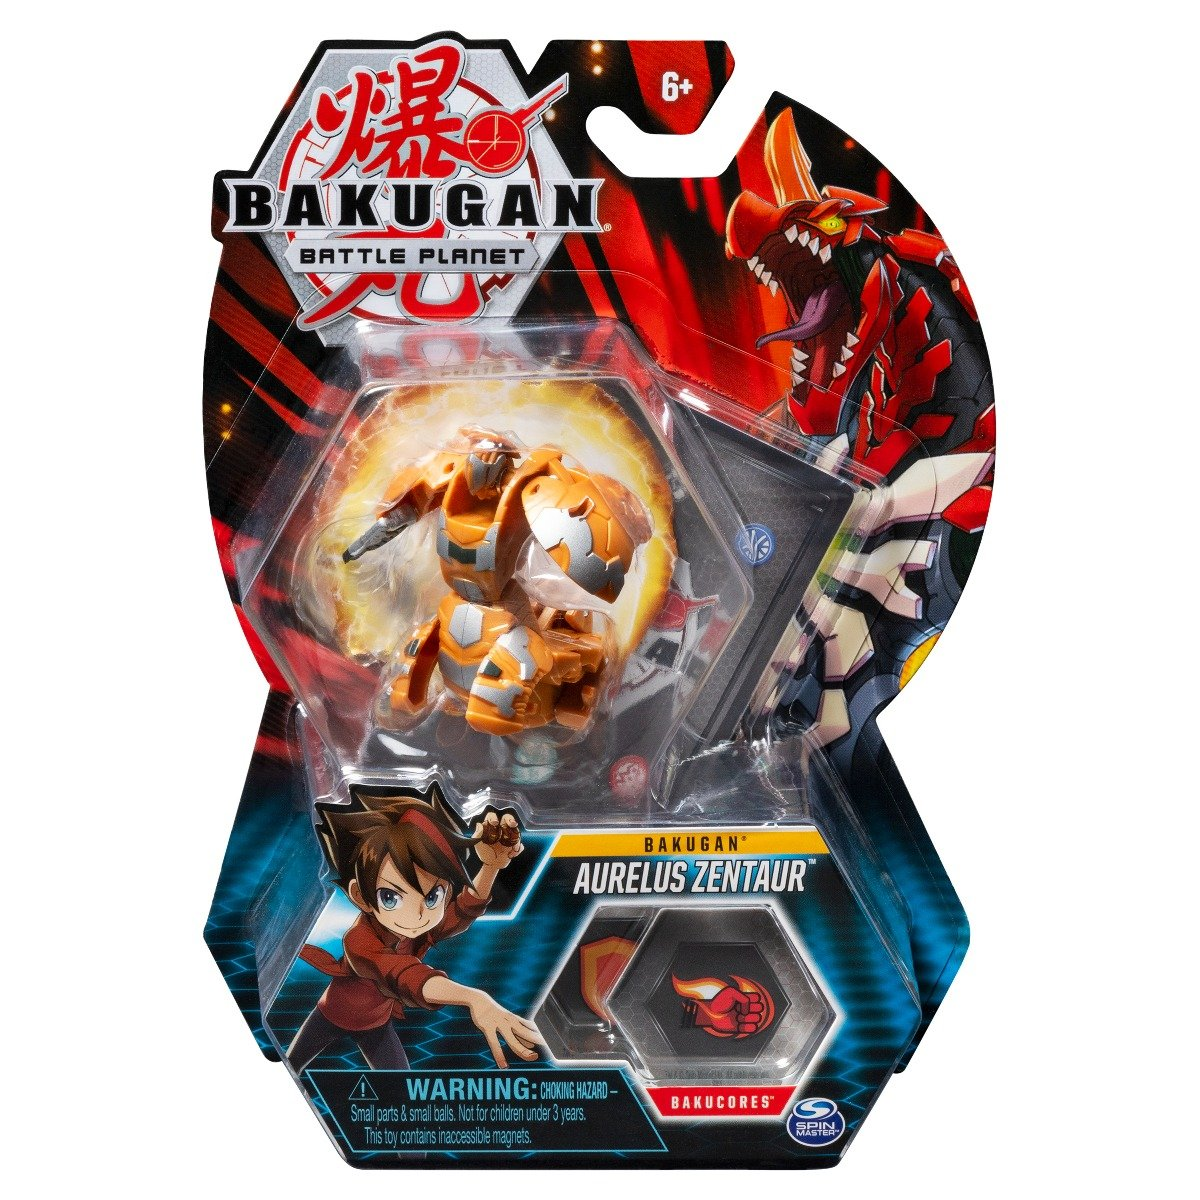 Figurina Bakugan Battle Planet, Aurelius Zentaur, 20118439